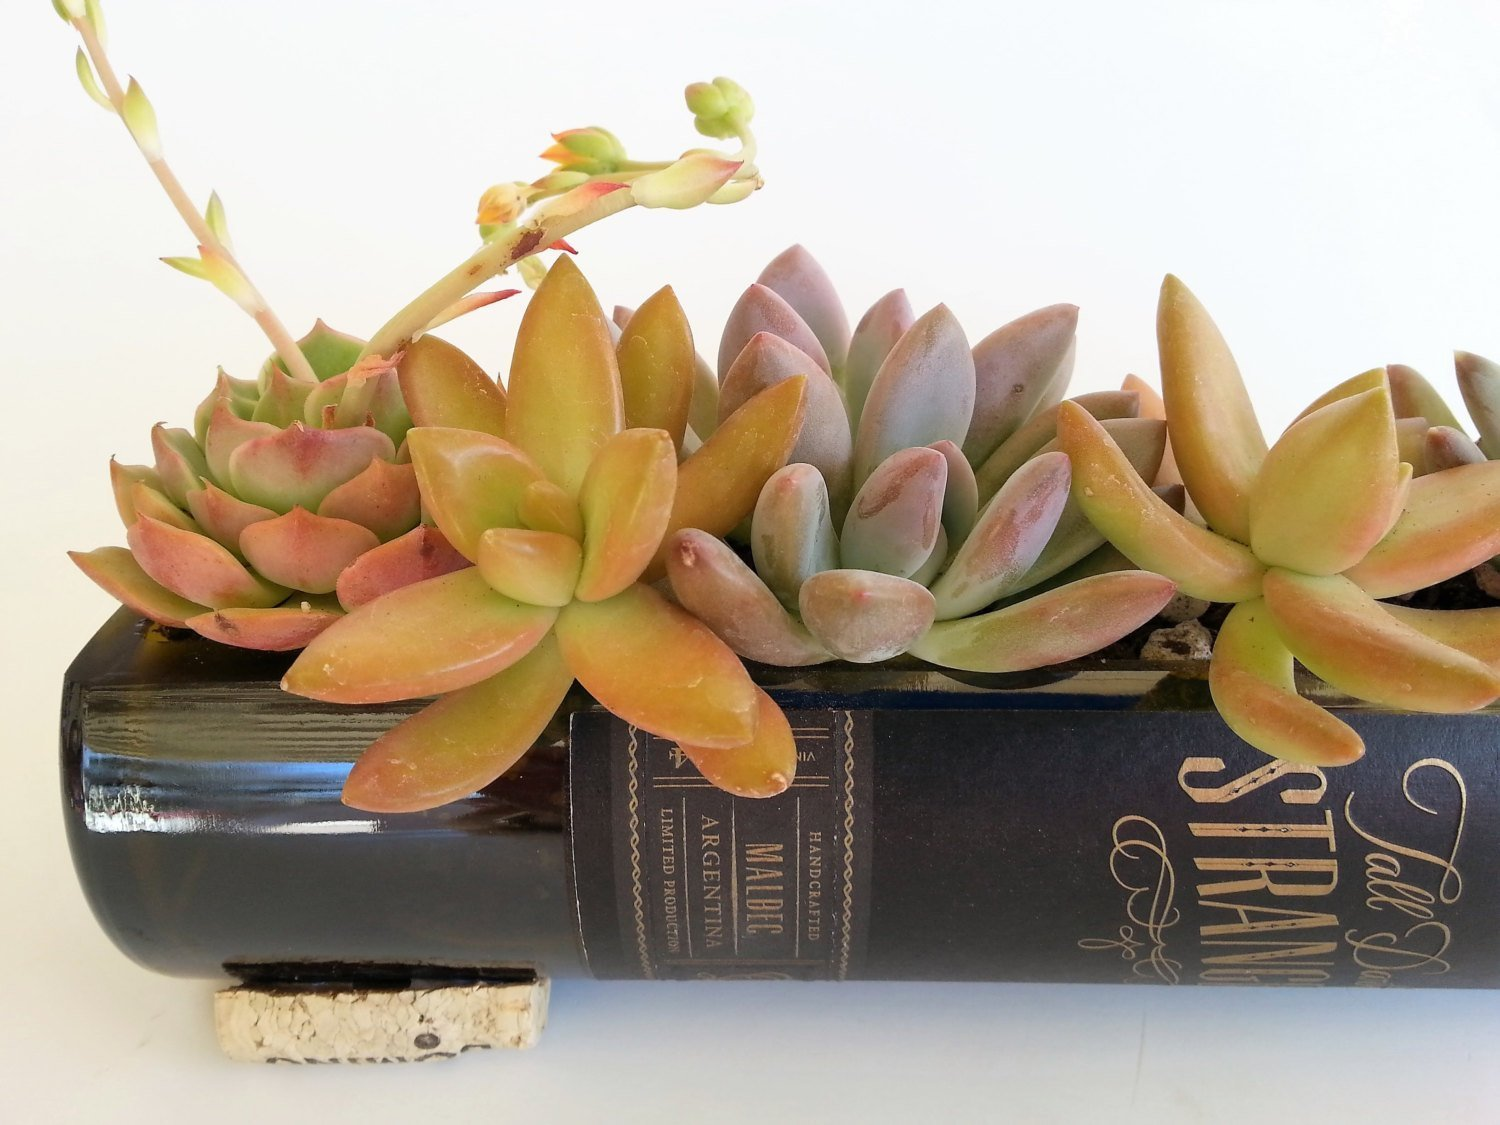 Wine Bottle Gardens make great Wine Gifts for Succulent Lovers - Live